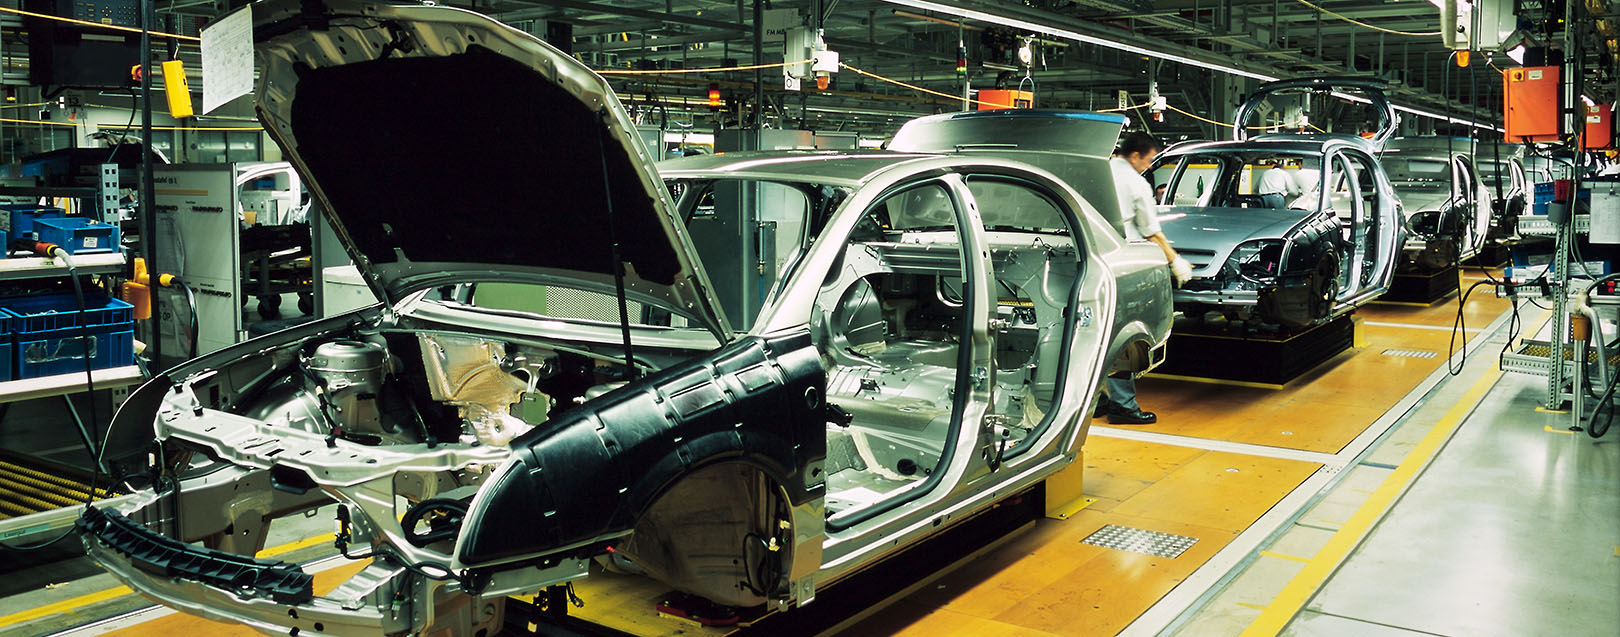 the factors affecting the location of a car manufacturing facility For instance, product pricing may depend heavily on the productivity of a manufacturing facility (eg, how much can be produced within a certain period of time) the marketer knows that increasing productivity can reduce the cost of producing each product, which potentially allows the marketer to potentially lower the product's price.